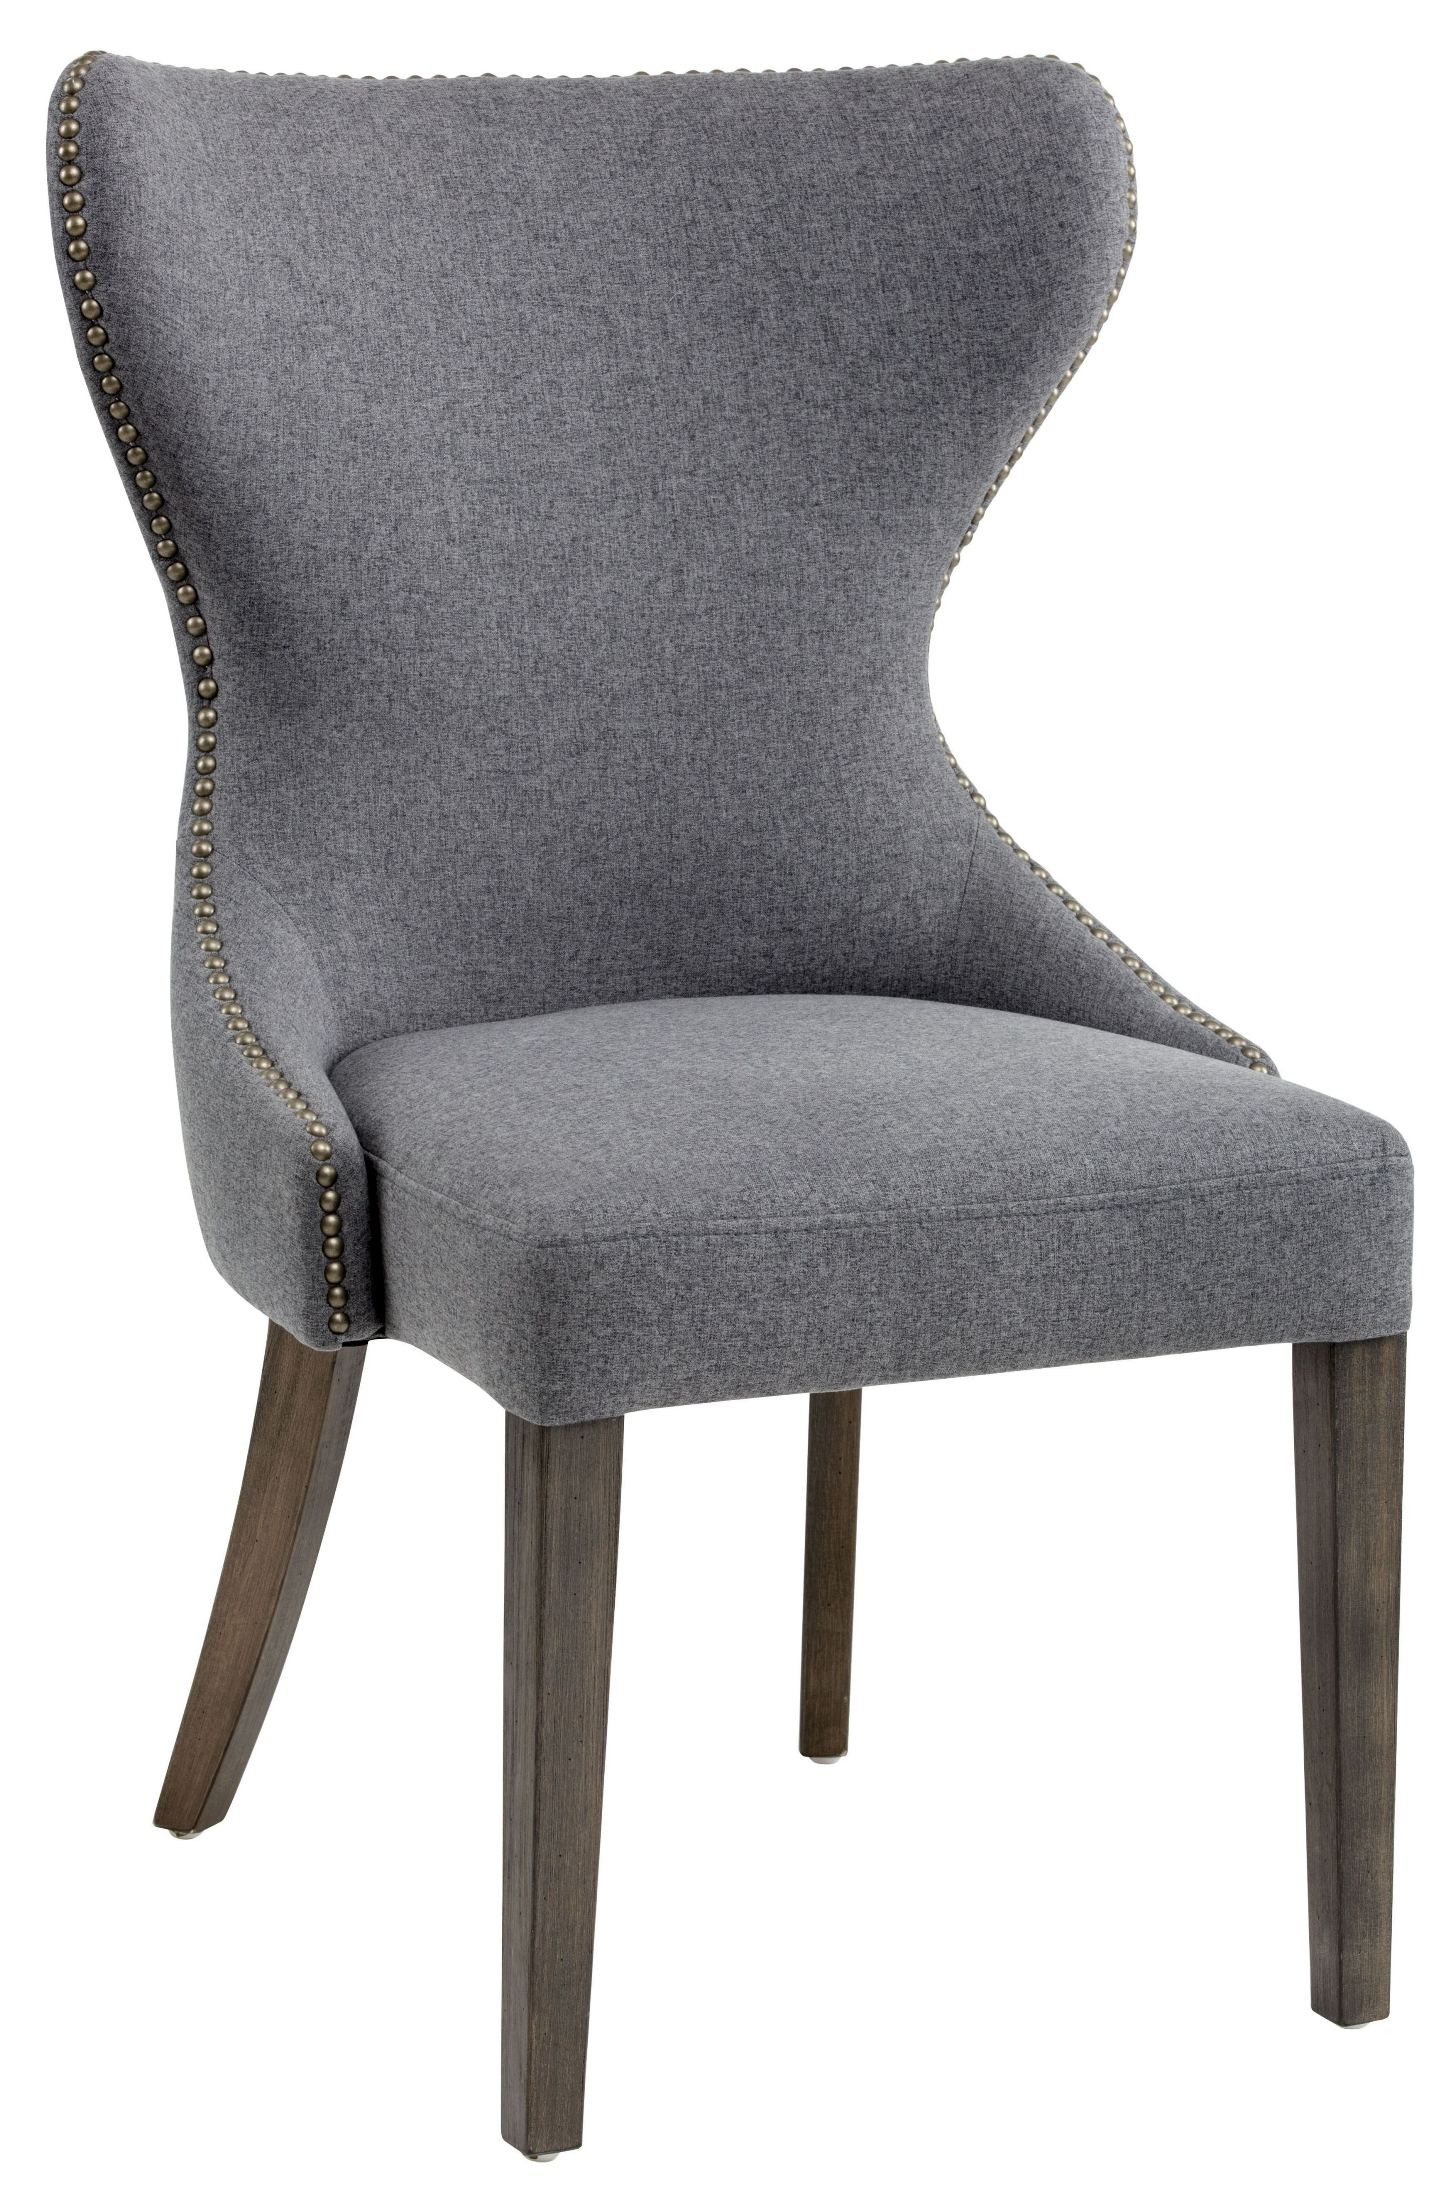 ariana dark grey fabric dining chair 101151 sunpan